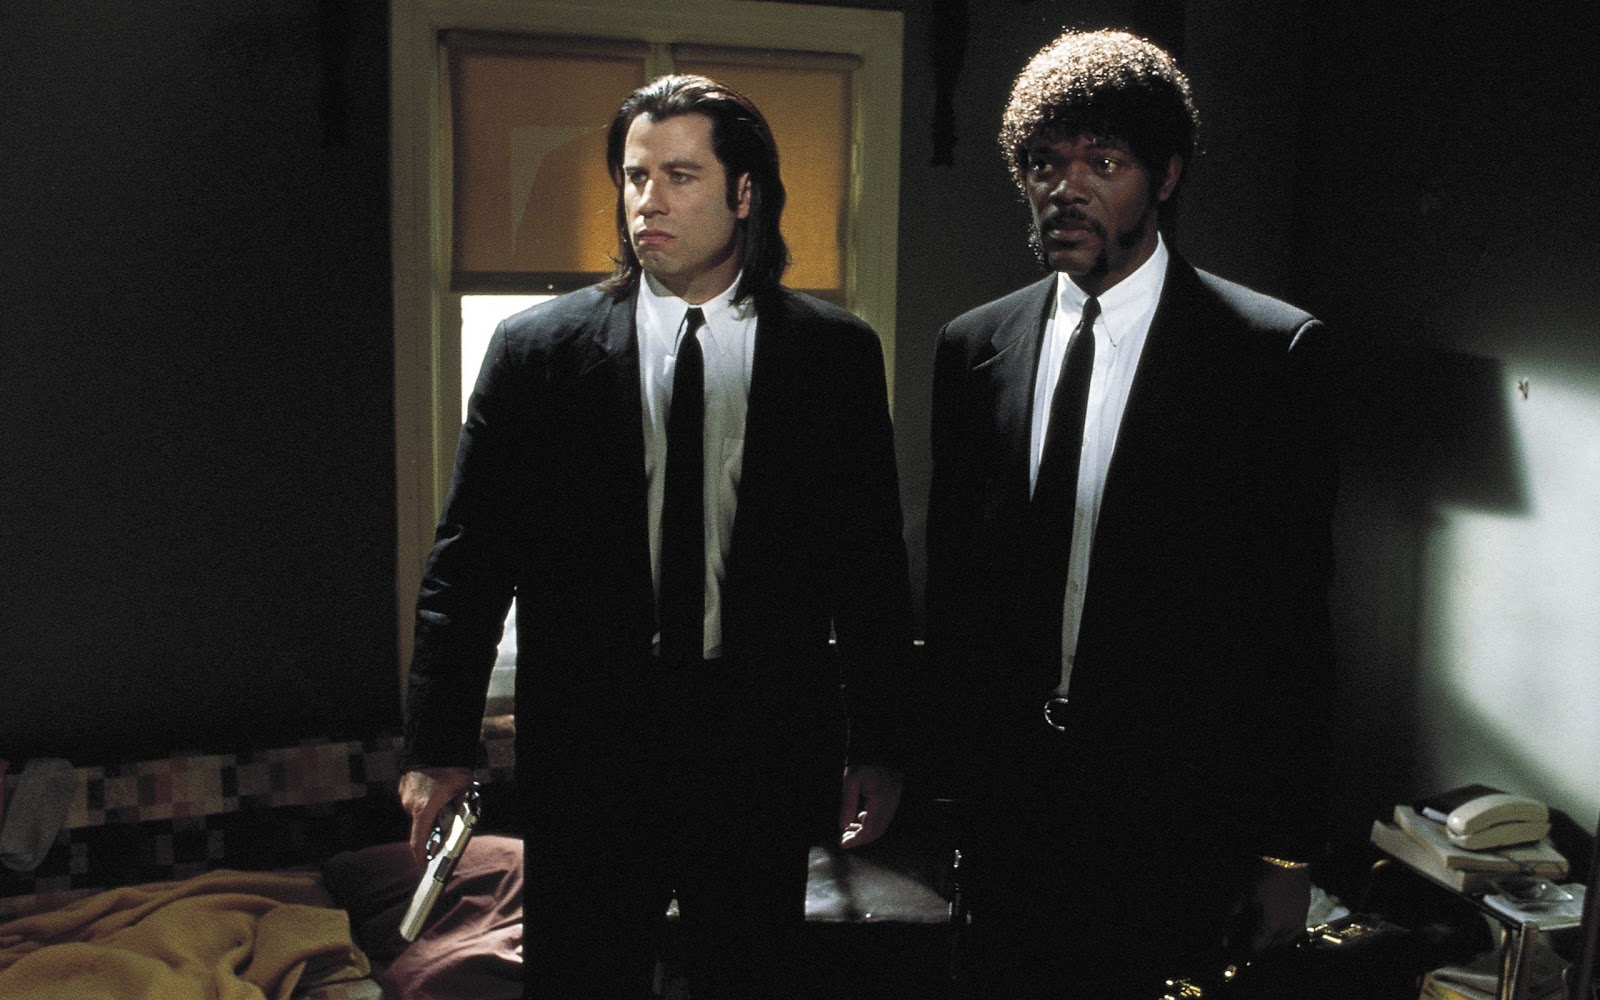 http://2.bp.blogspot.com/-y7YYyGo16RE/UMok4_Fpe-I/AAAAAAAADJM/FNYNEs33P5s/s1600/Pulp+Fiction+-+Vincent+and+Jules.jpg